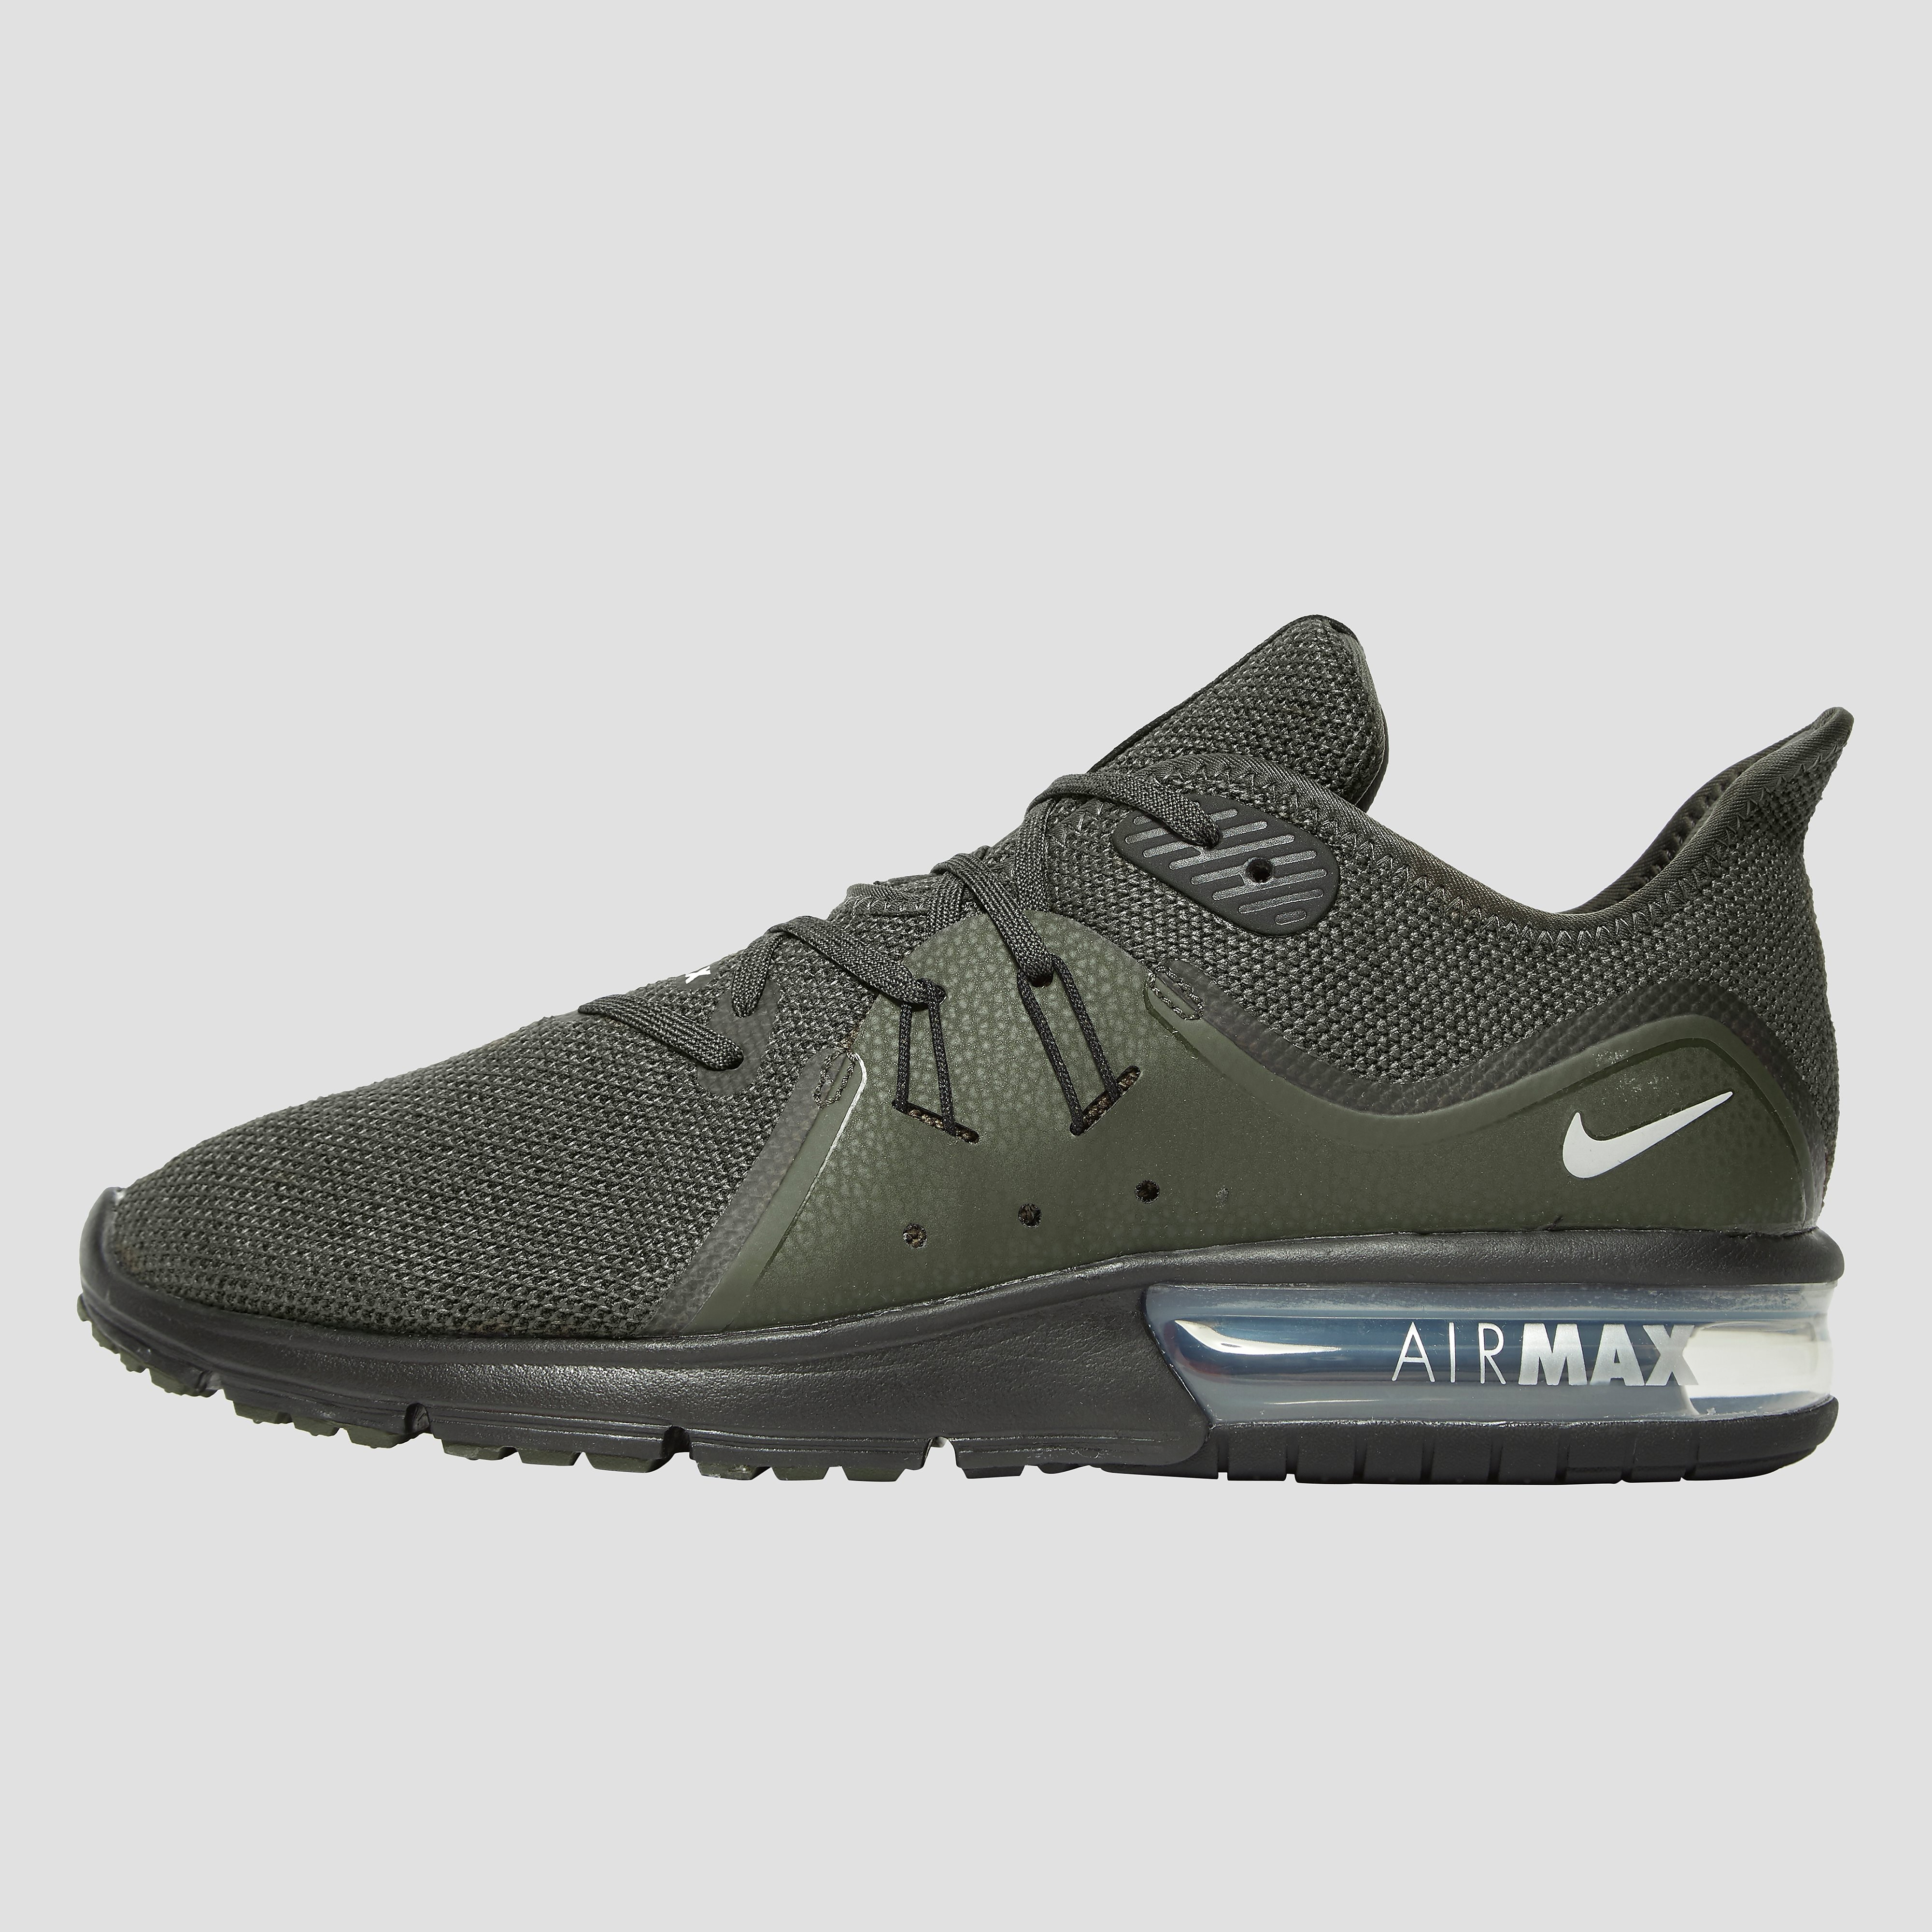 Nike Nike air max sequent 3 men's running shoes